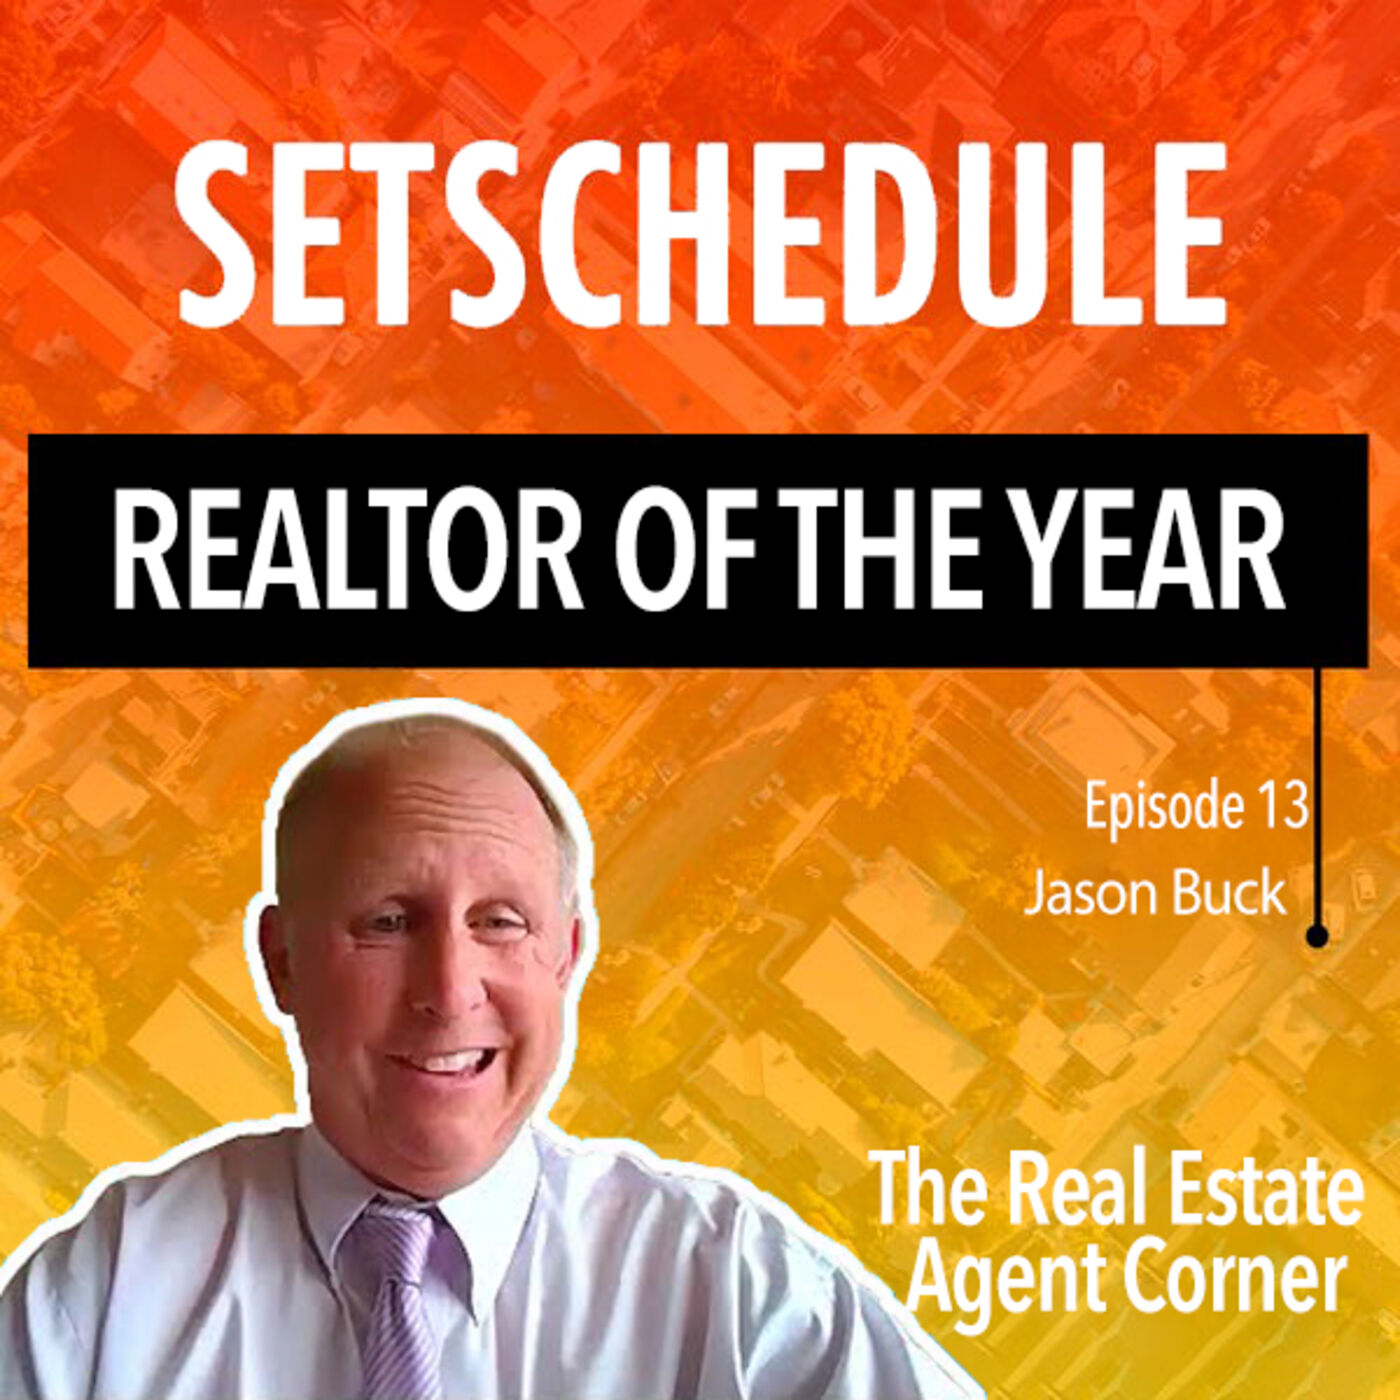 How I became the Realtor of the Year? - Jason Buck